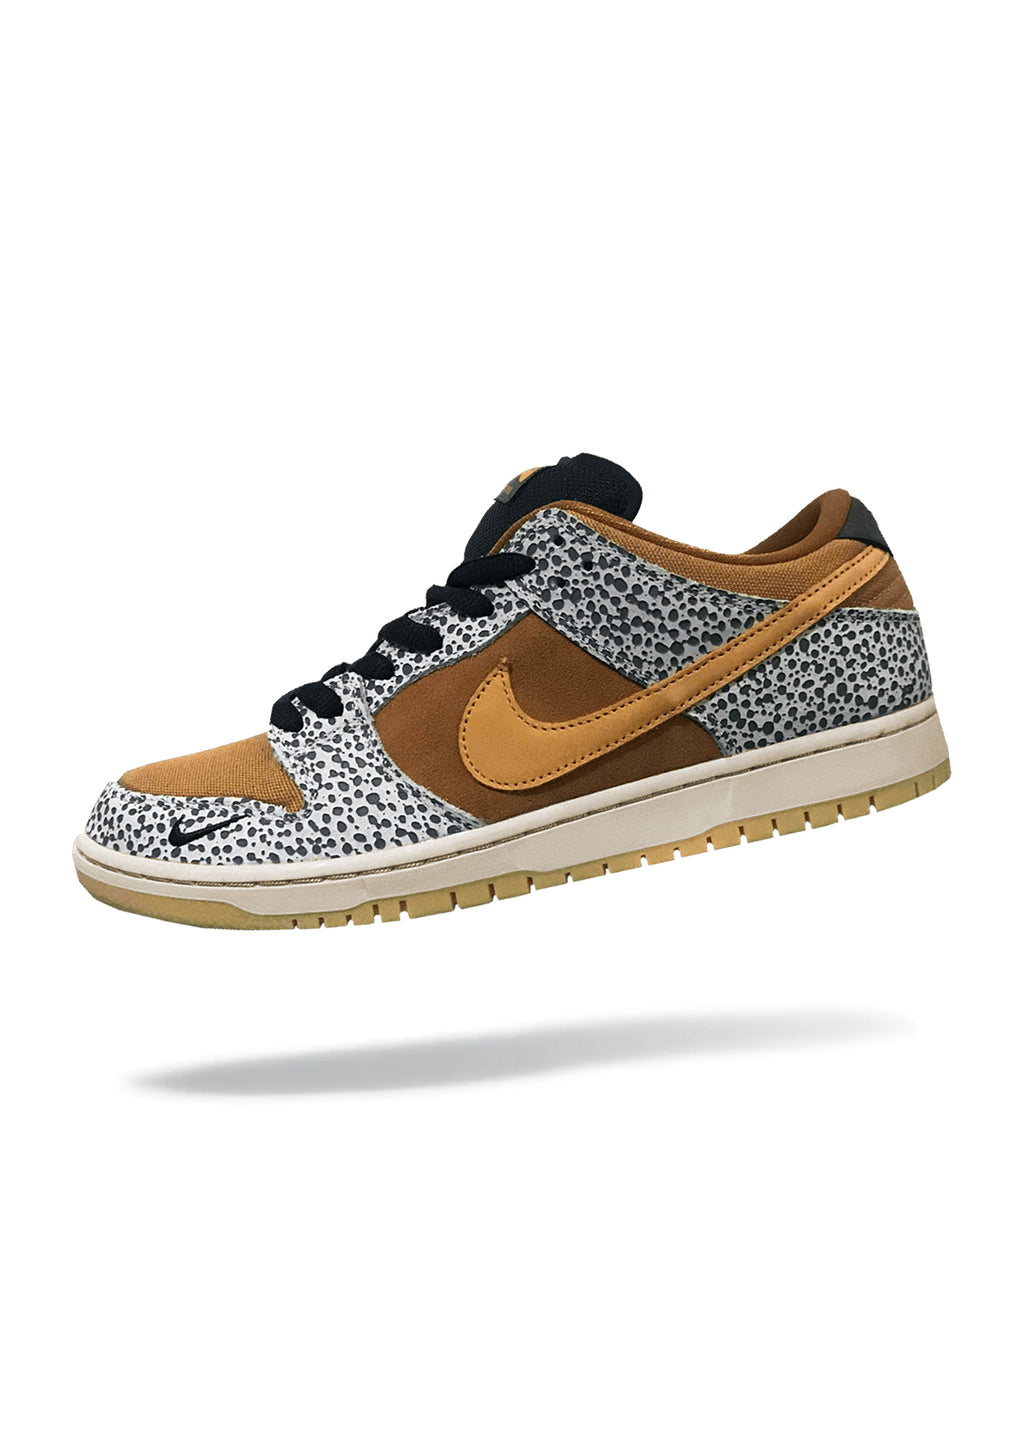 NIKE DUNK LOW SB SAFARI